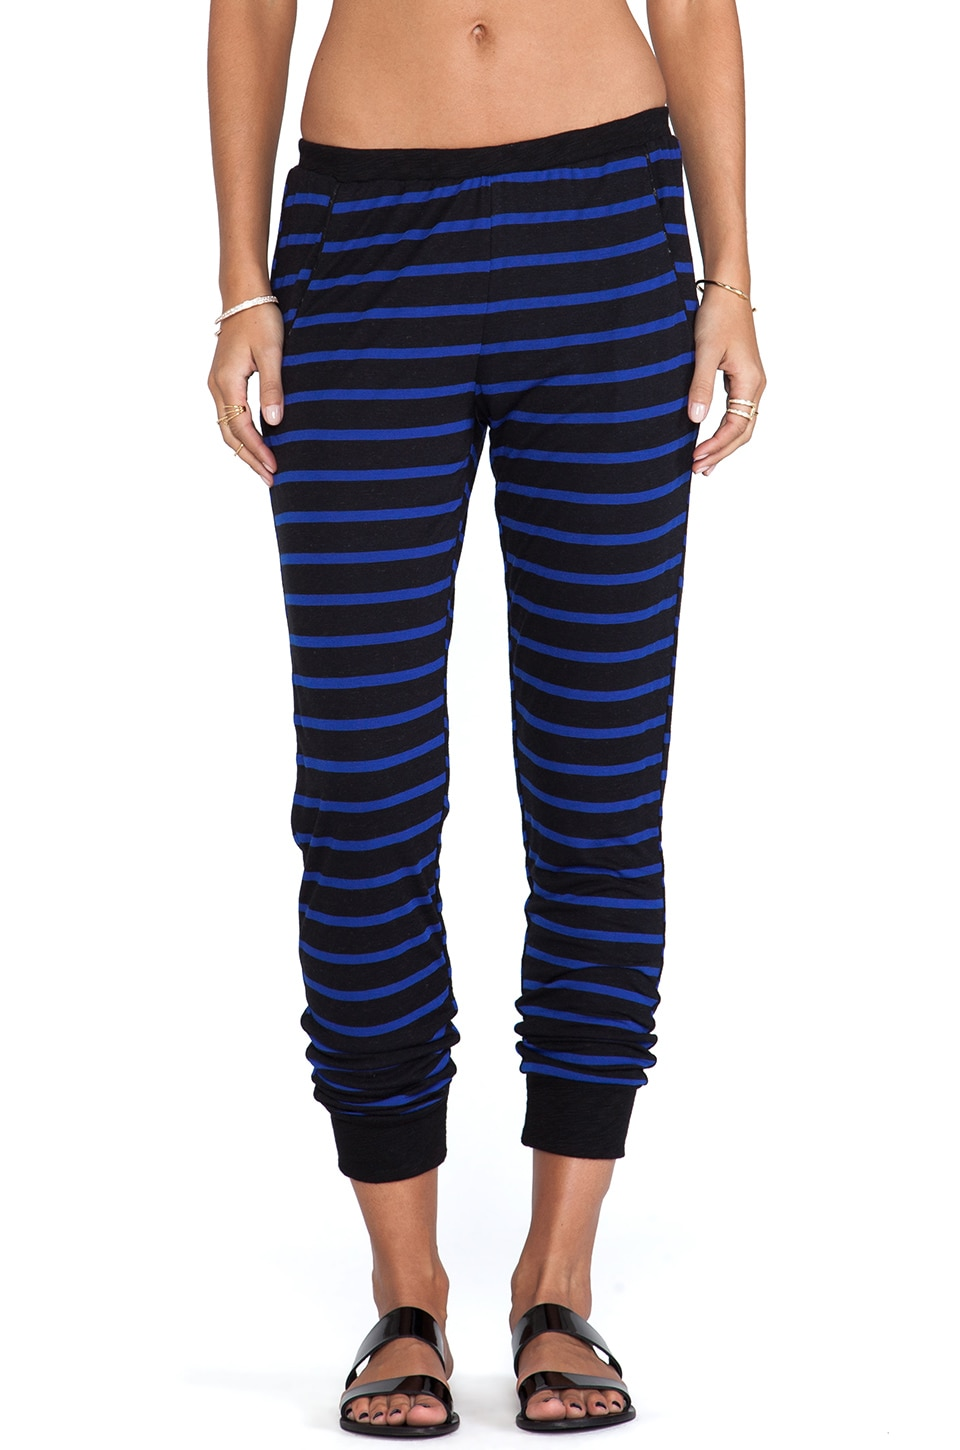 LNA Aldridge Pant in Black & Blue Stripe